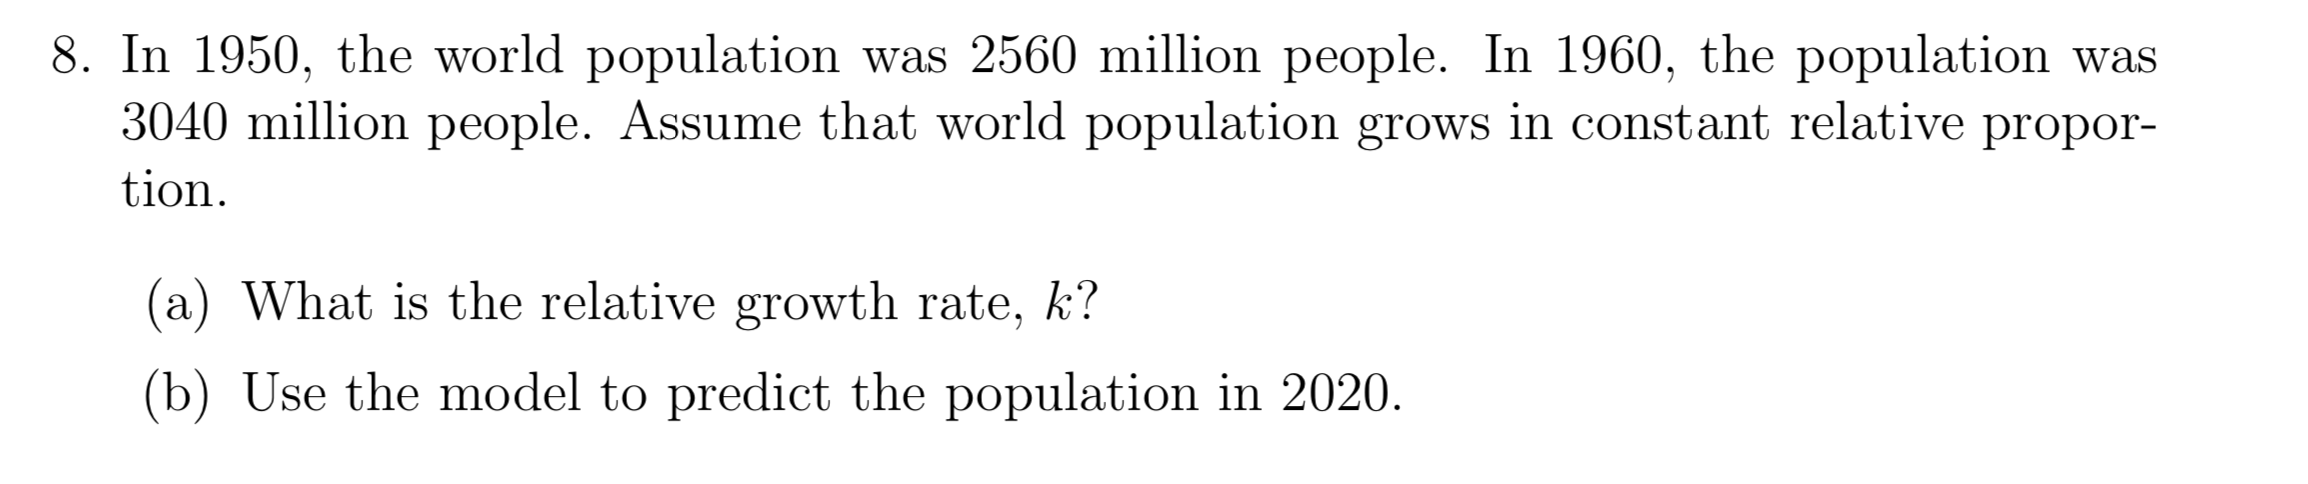 8. In 1950, the world population was 2560 million people. In 1960, the population was 3040 million people. Assume that world population grows in constant relative propor- tion (a) What is the relative growth rate, k? (b) Use the model to predict the population in 2020.